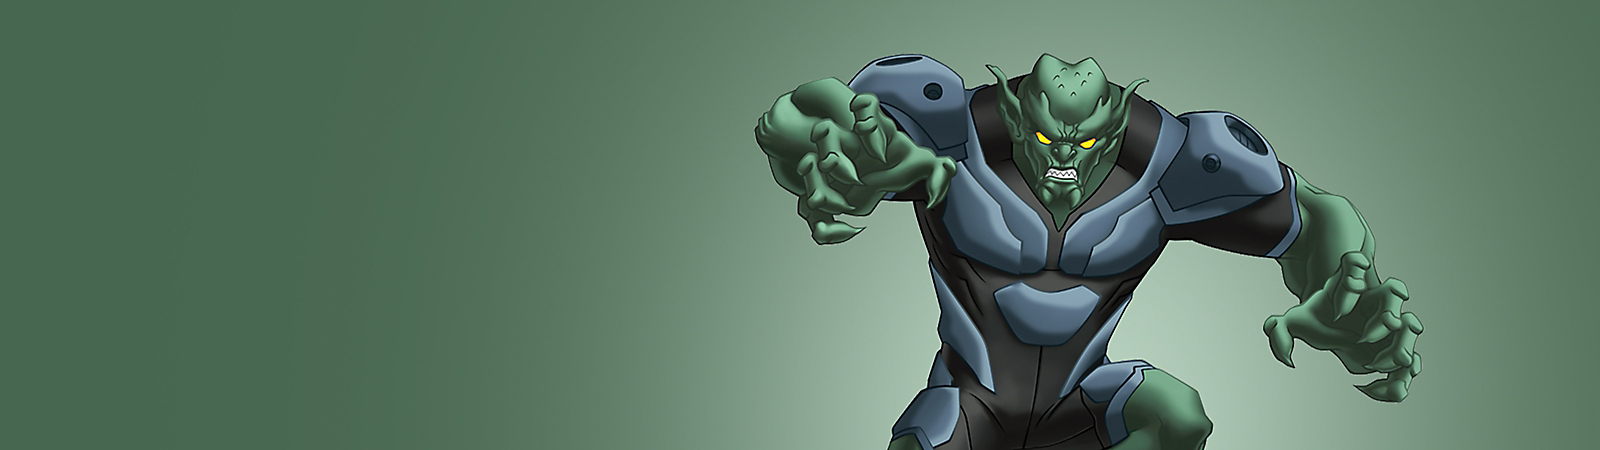 Background image of Green Goblin